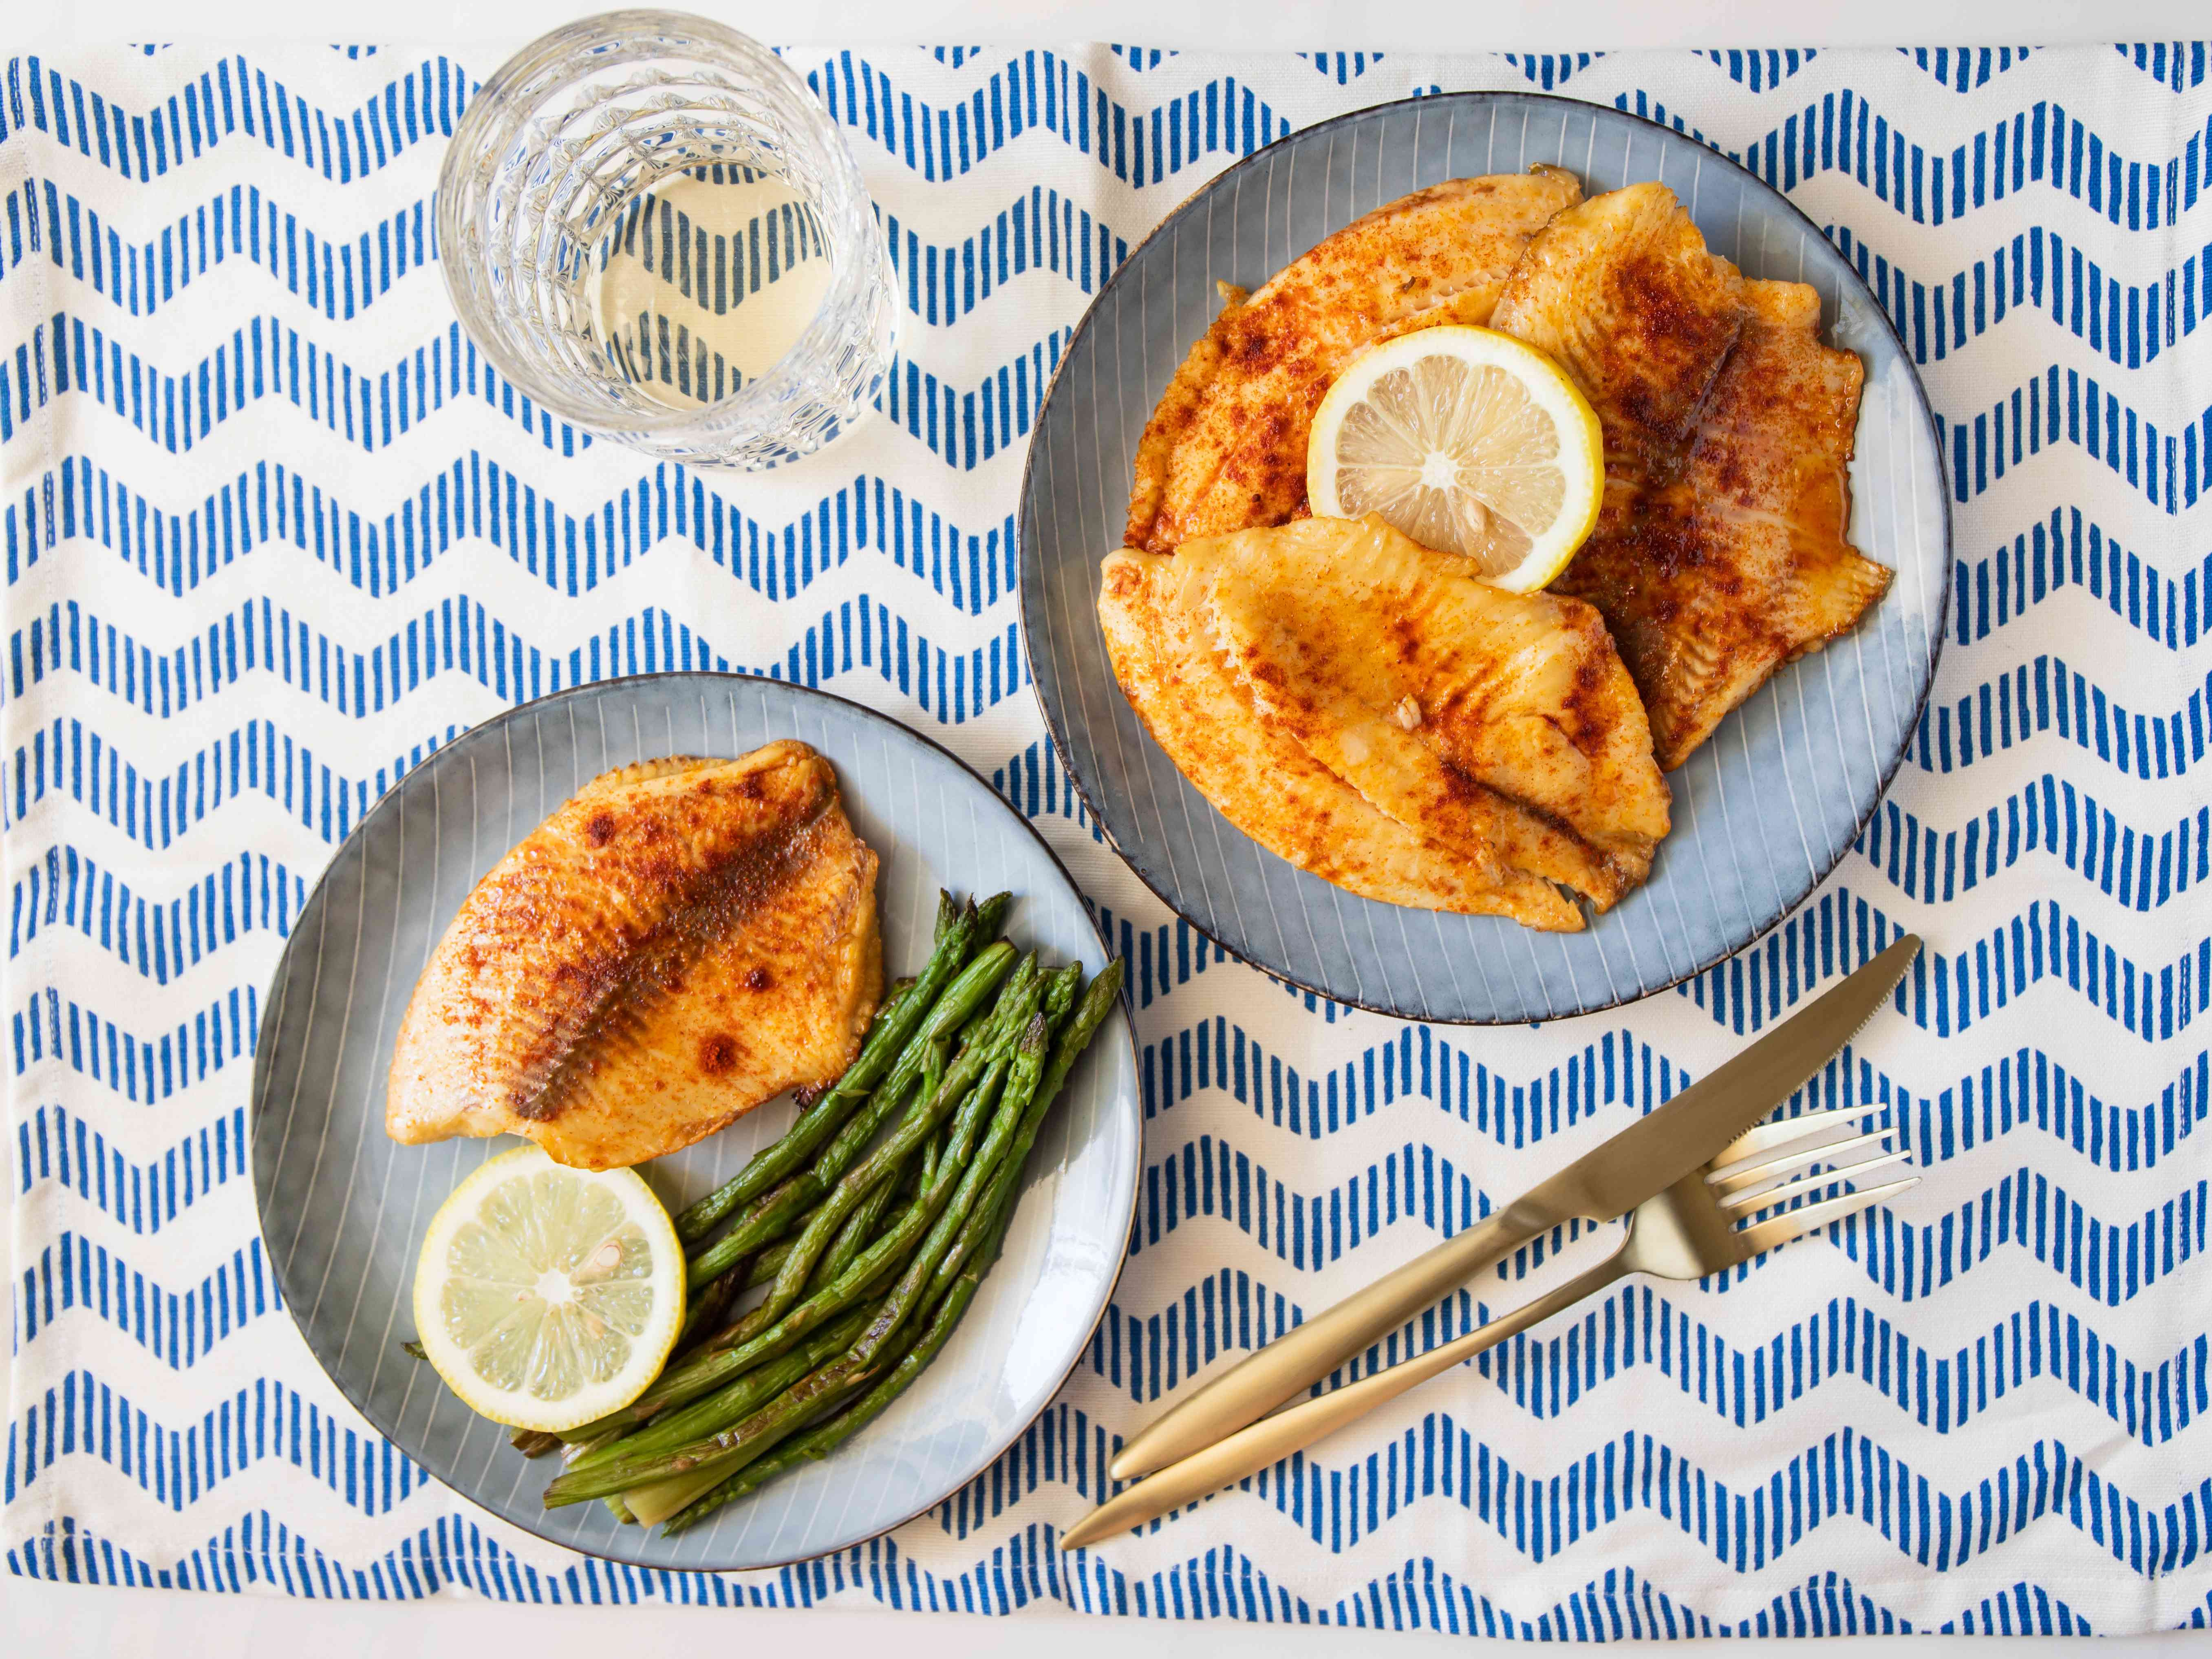 Broiled Tilapia With Lemon and Butter